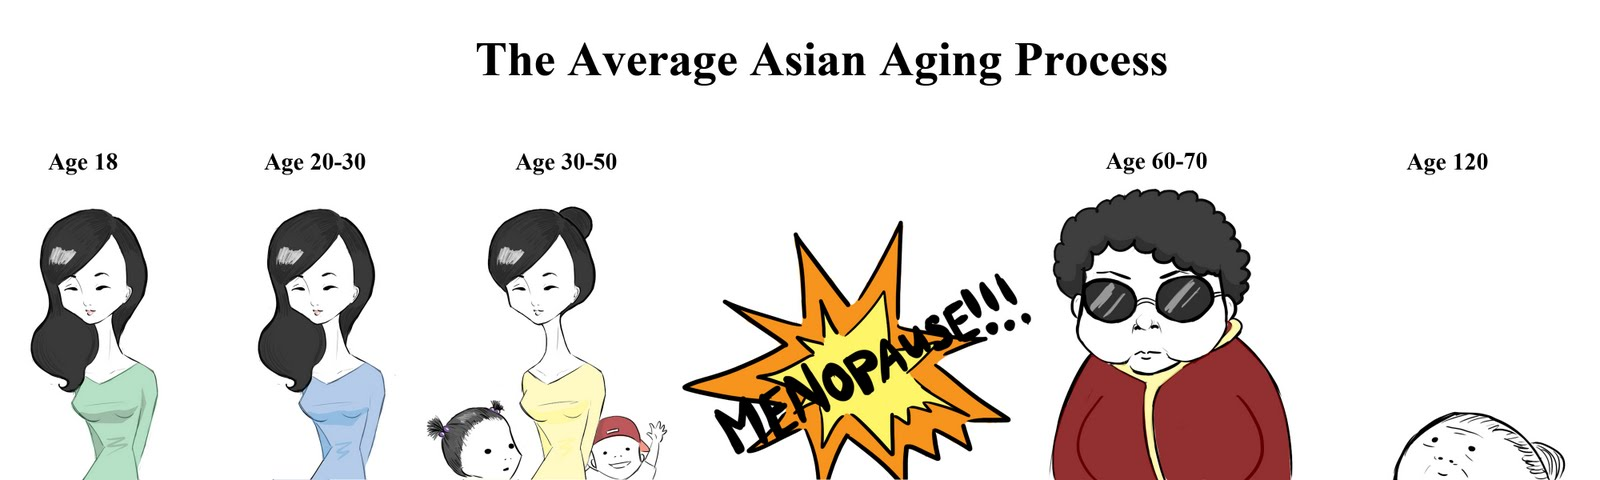 Asian women aging comic